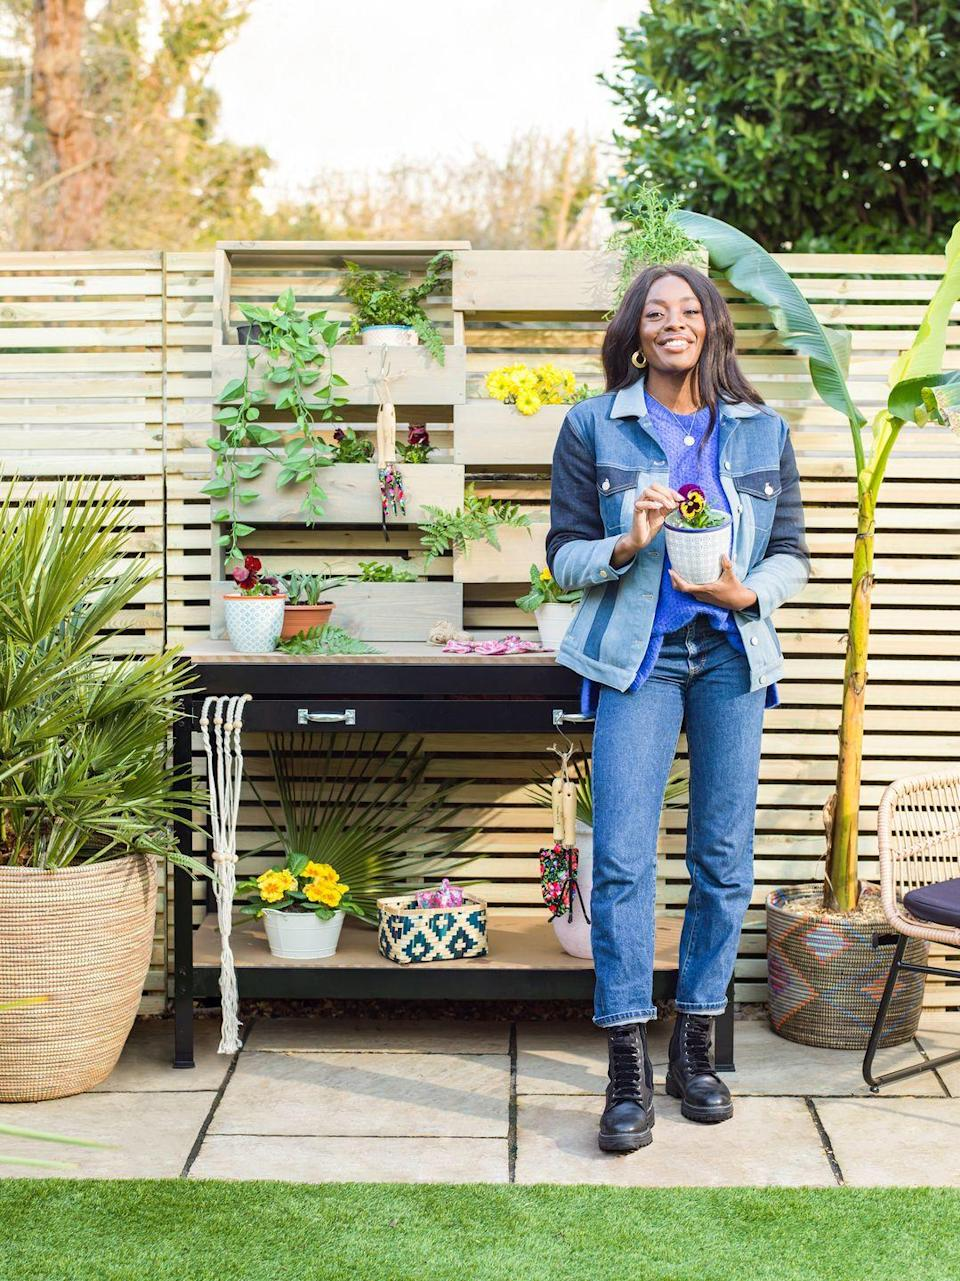 <p>'I added the potting station mainly for my Dad as he is a keen gardener and will be able to come round and grow plants & herbs with me,' she says. 'It's one thing creating a space for yourself but when you get to share it with others it's even better.'</p>